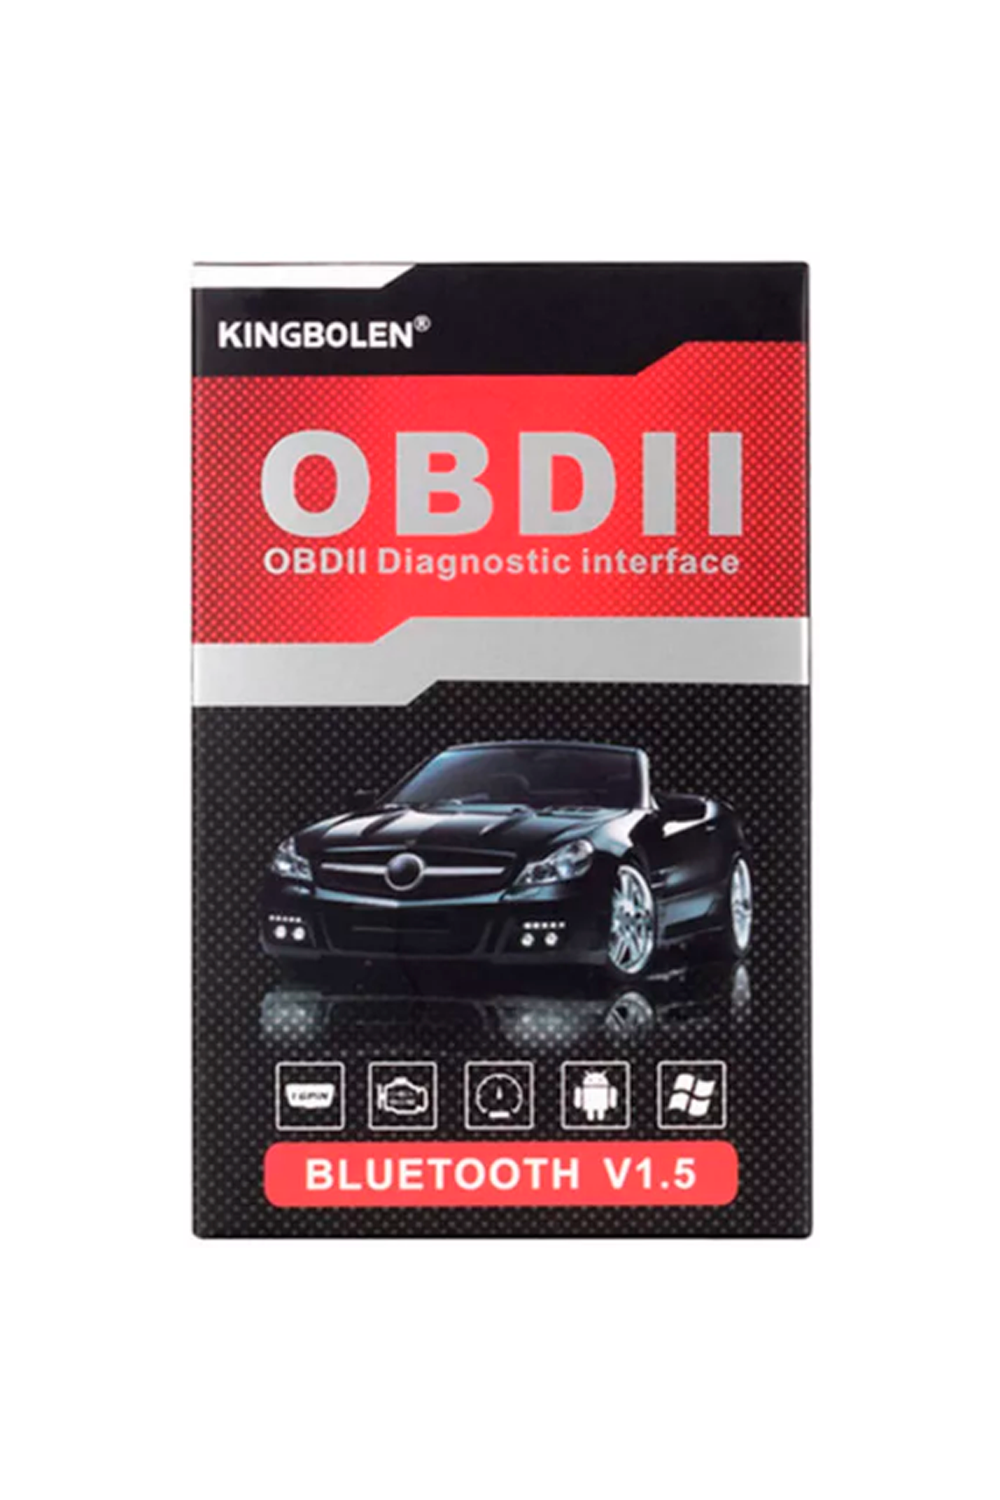 OBD2 diagnostic interface KINGBOLEN bluetooth v1.5